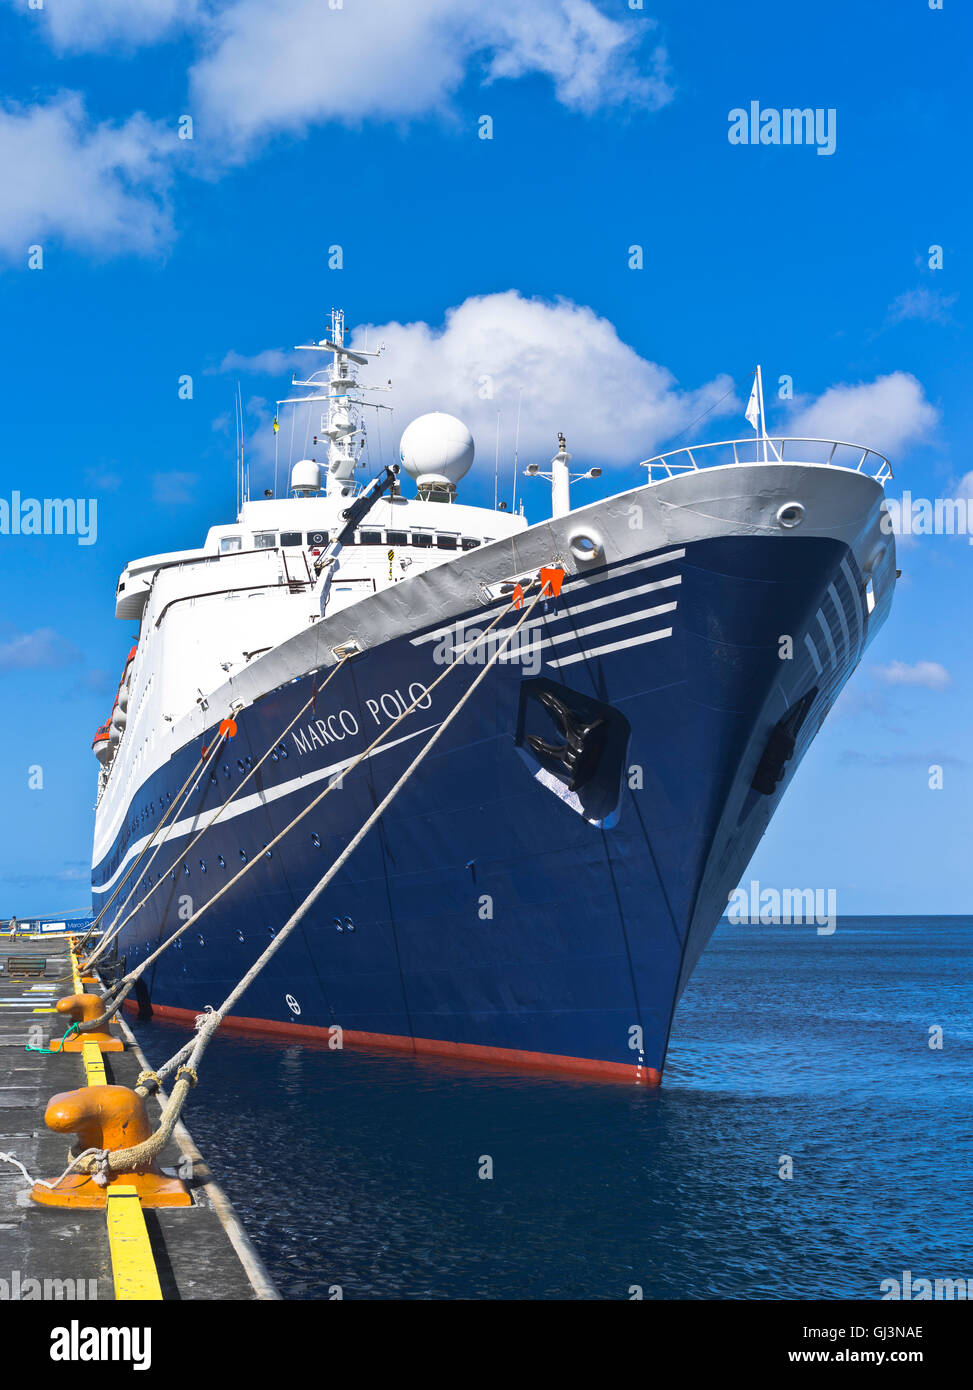 dh Marco Polo CRUISE SHIP CARIBBEAN CMV cruise liner berthed Kingstown St Vincent wharf pier - Stock Image